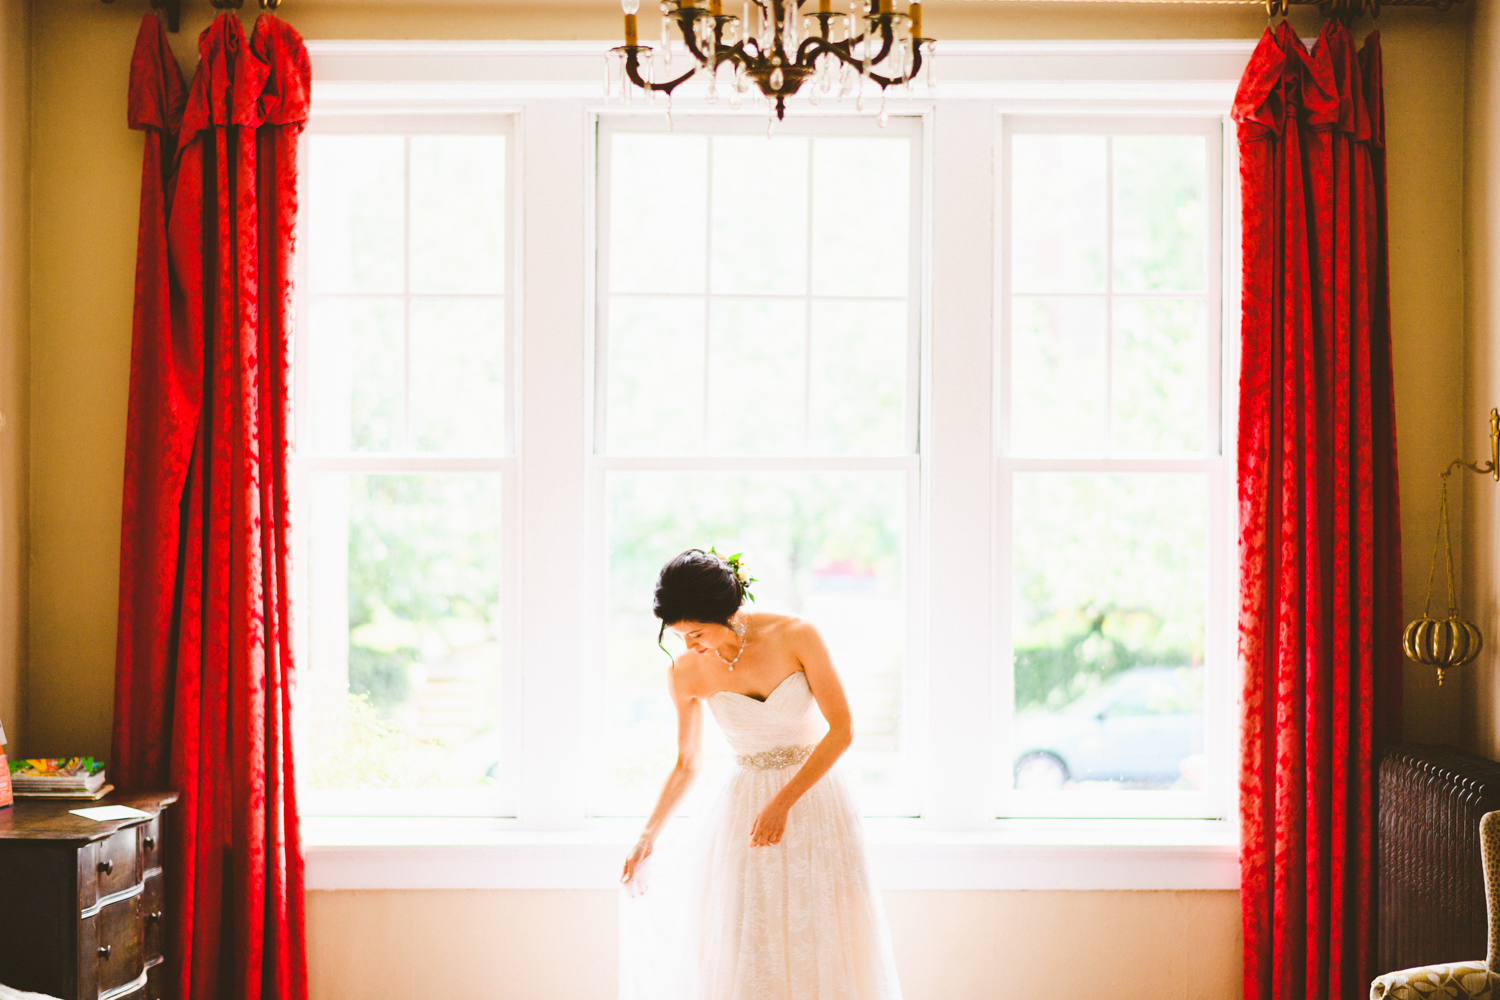 050 - bride adjusting her dress in front of big picture window with red curtains.jpg